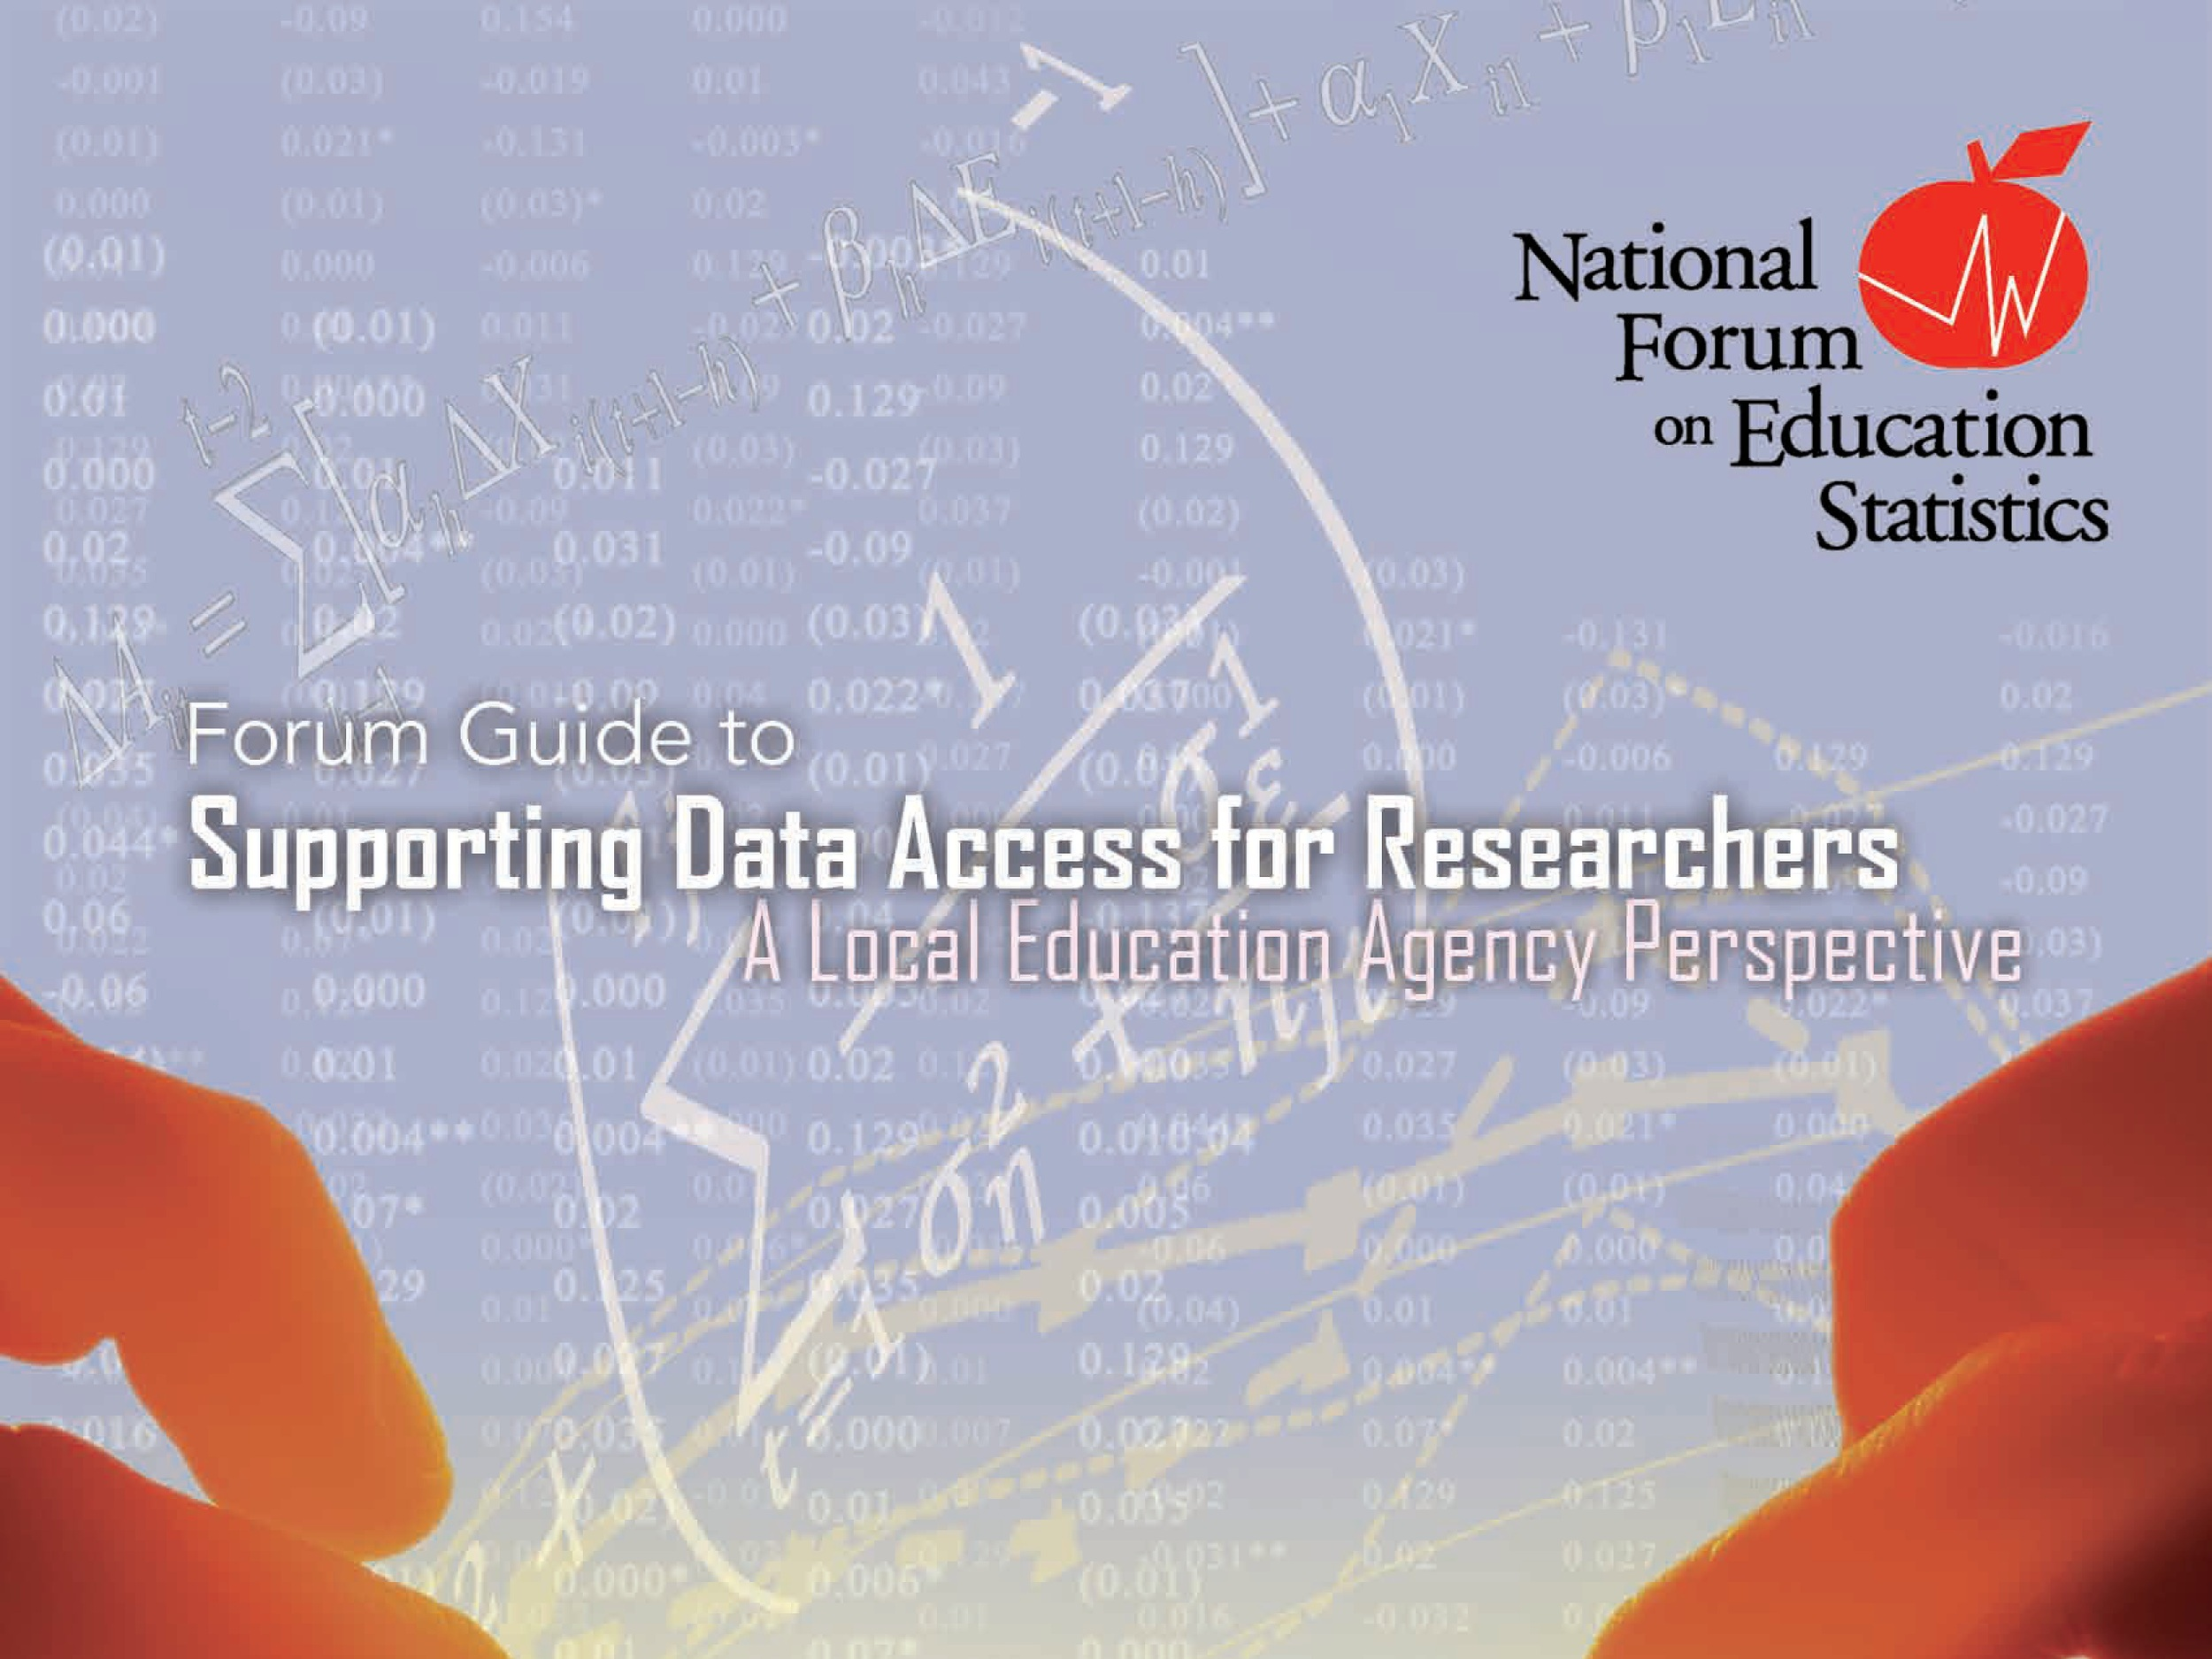 Forum Guide to Supporting Data Access for Researchers: A Local Agency Perspective